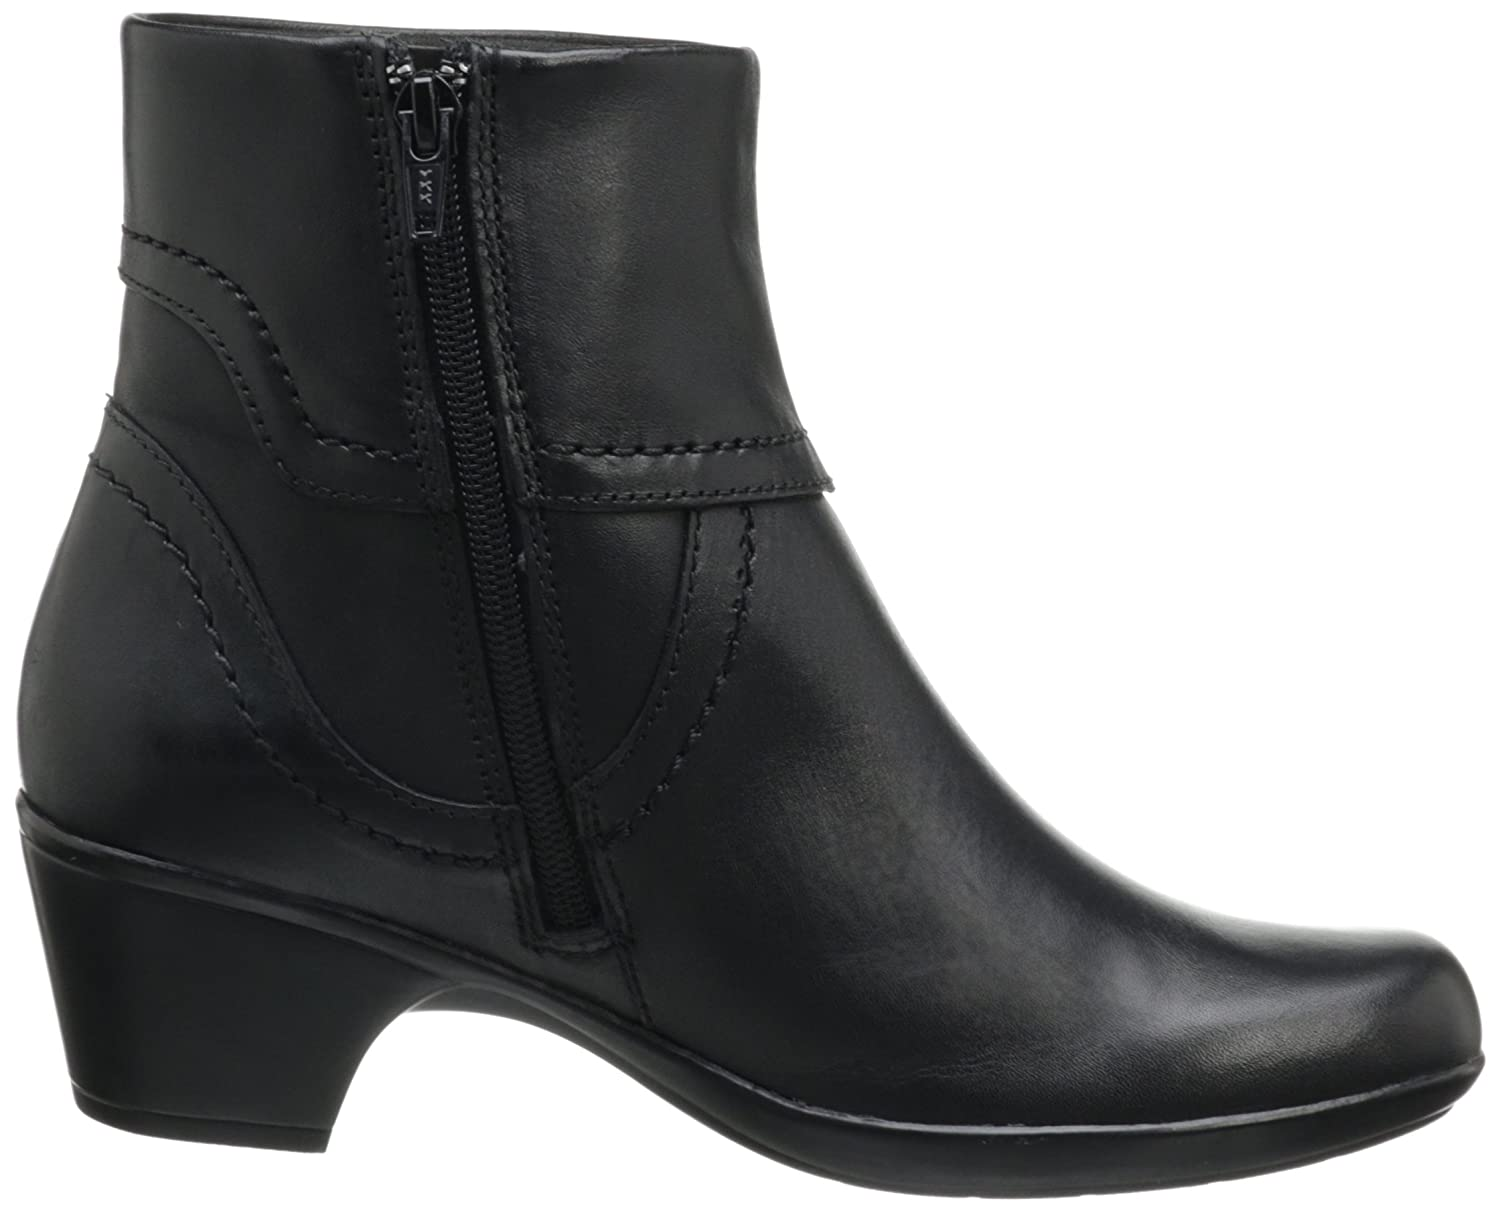 Amazon.com | CLARKS Women's Ingalls Tweed Bootie, Black Leather, 10 M US |  Ankle & Bootie